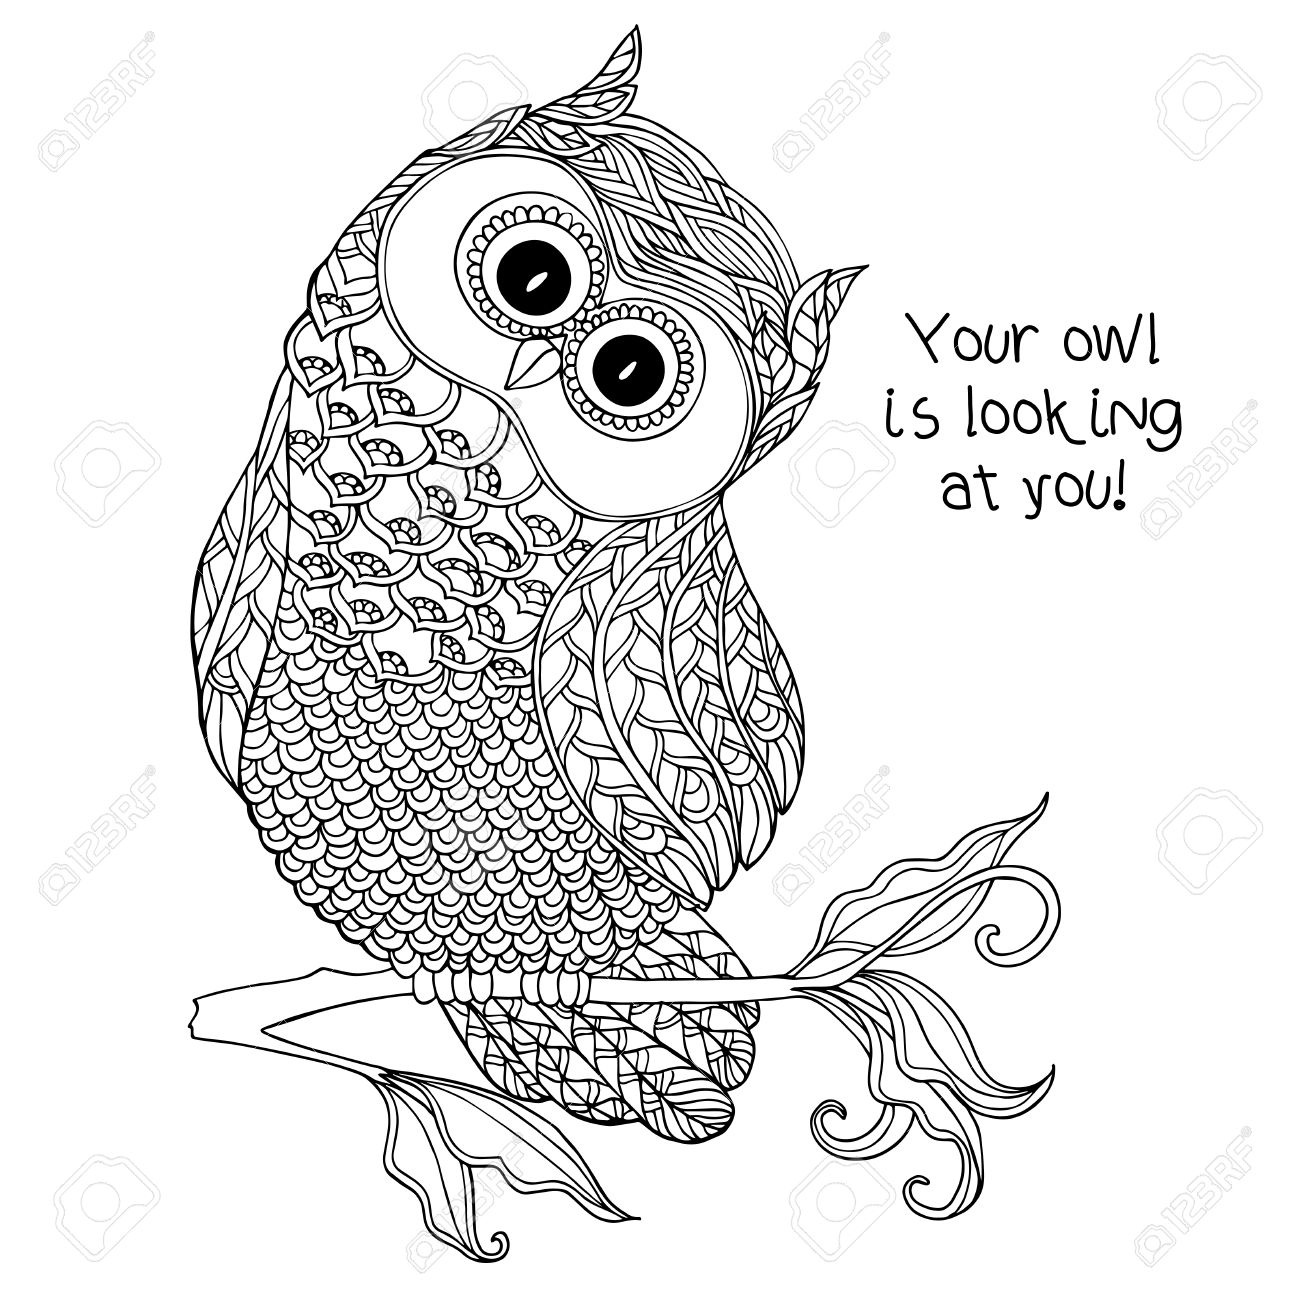 Scary Owl Drawing At Getdrawings